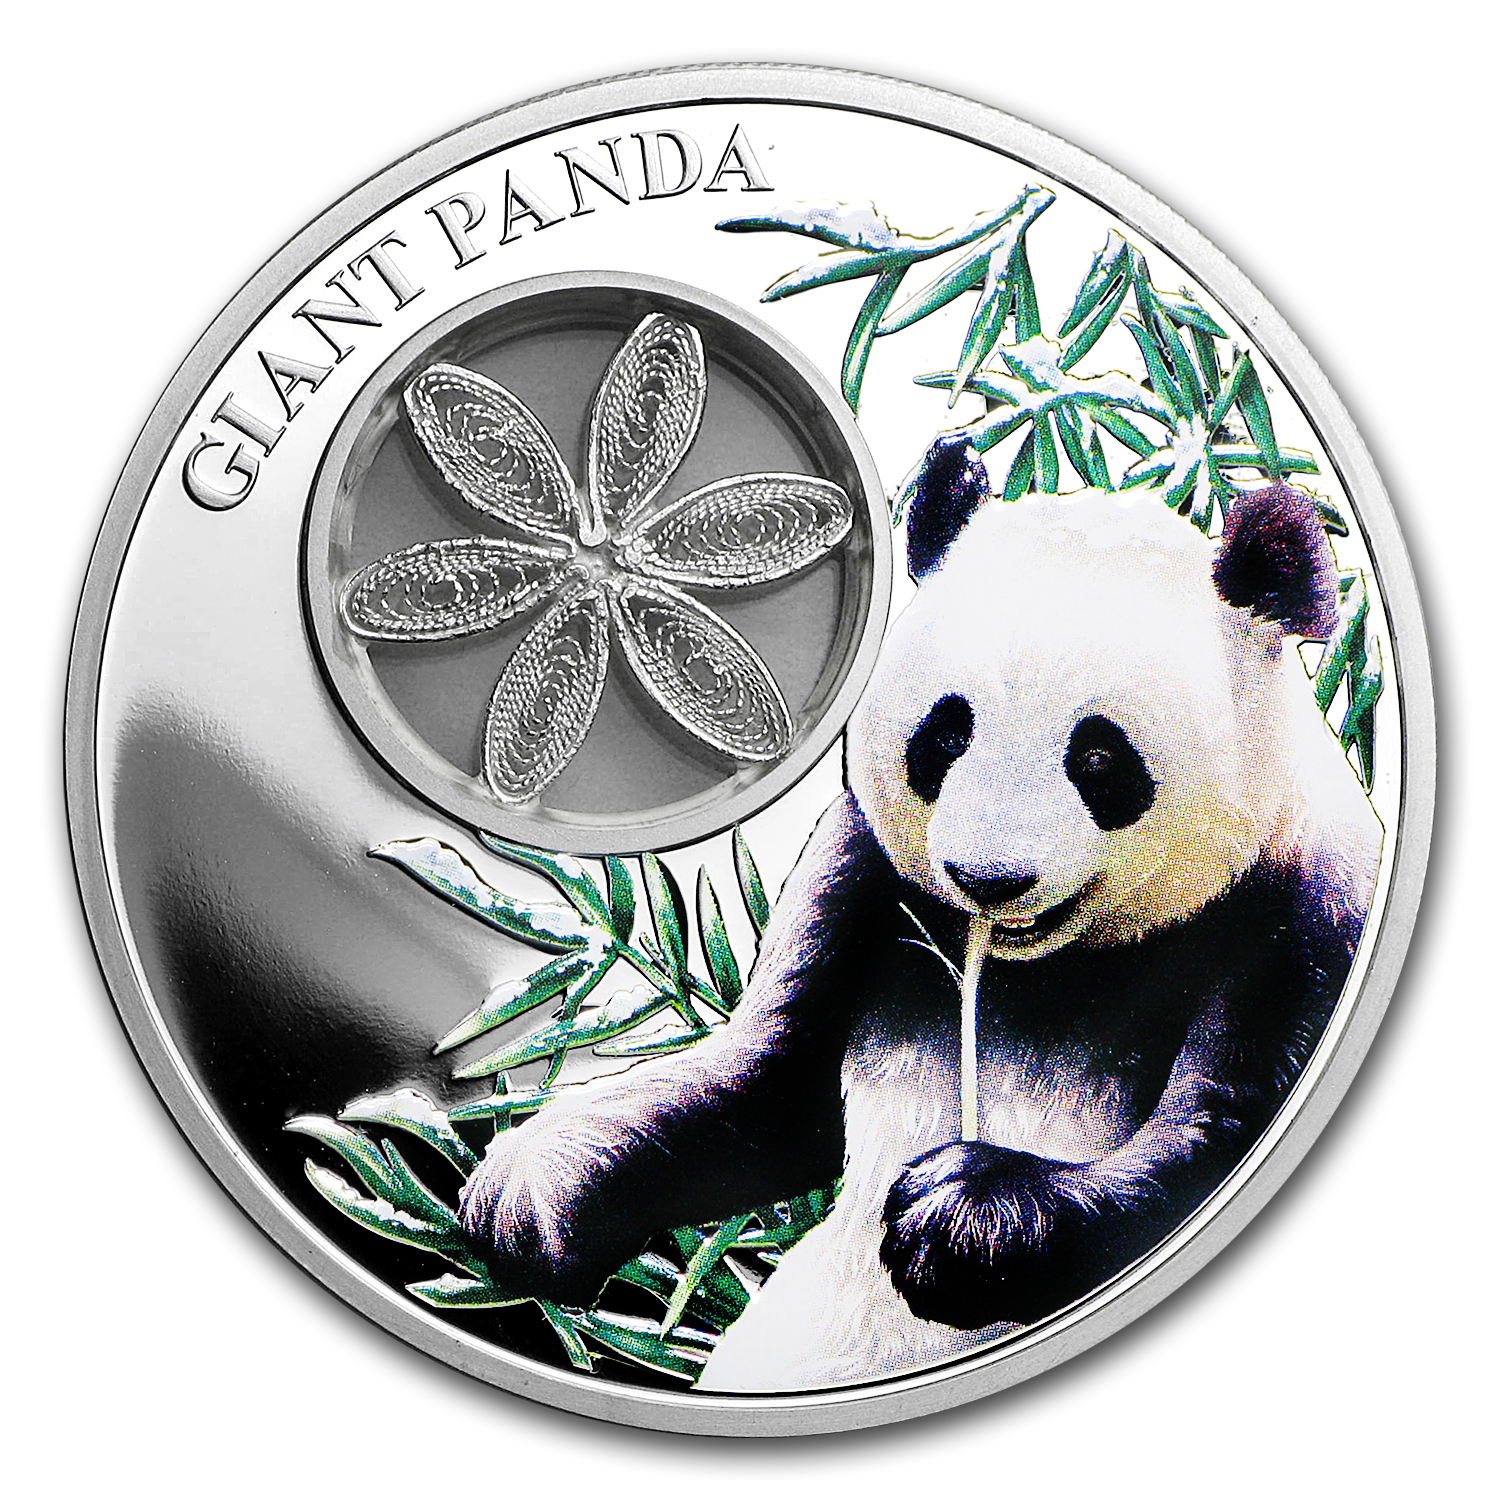 2017 Tokelau Proof 1 oz Silver Giant Panda (w/Filigree)